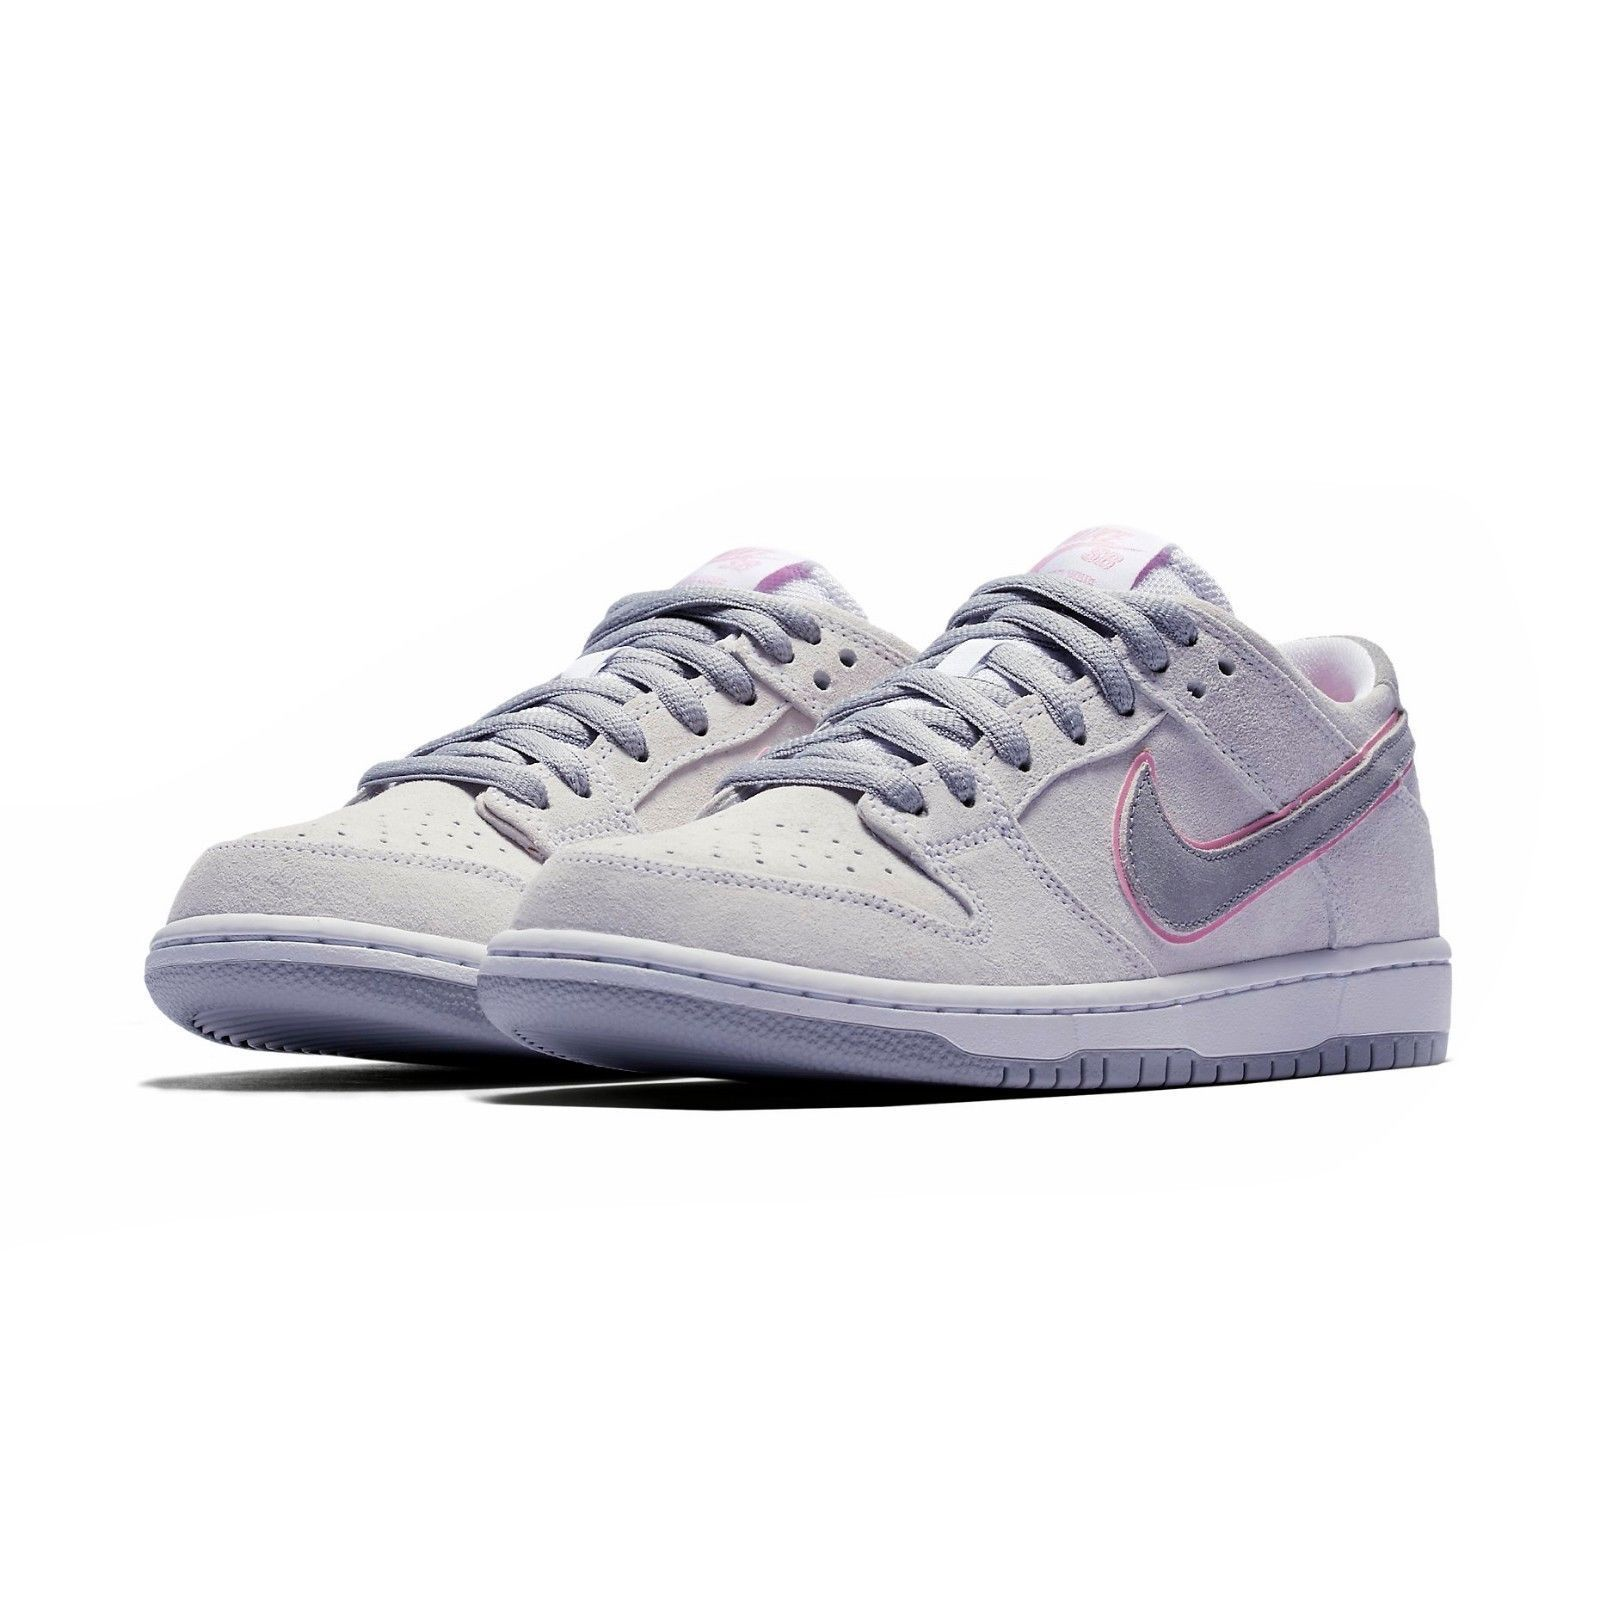 separation shoes 4b255 79d36 NIKE SB ZOOM DUNK LOW PRO IW WHITE PINK SILVER MEN SIZE 9 NEW